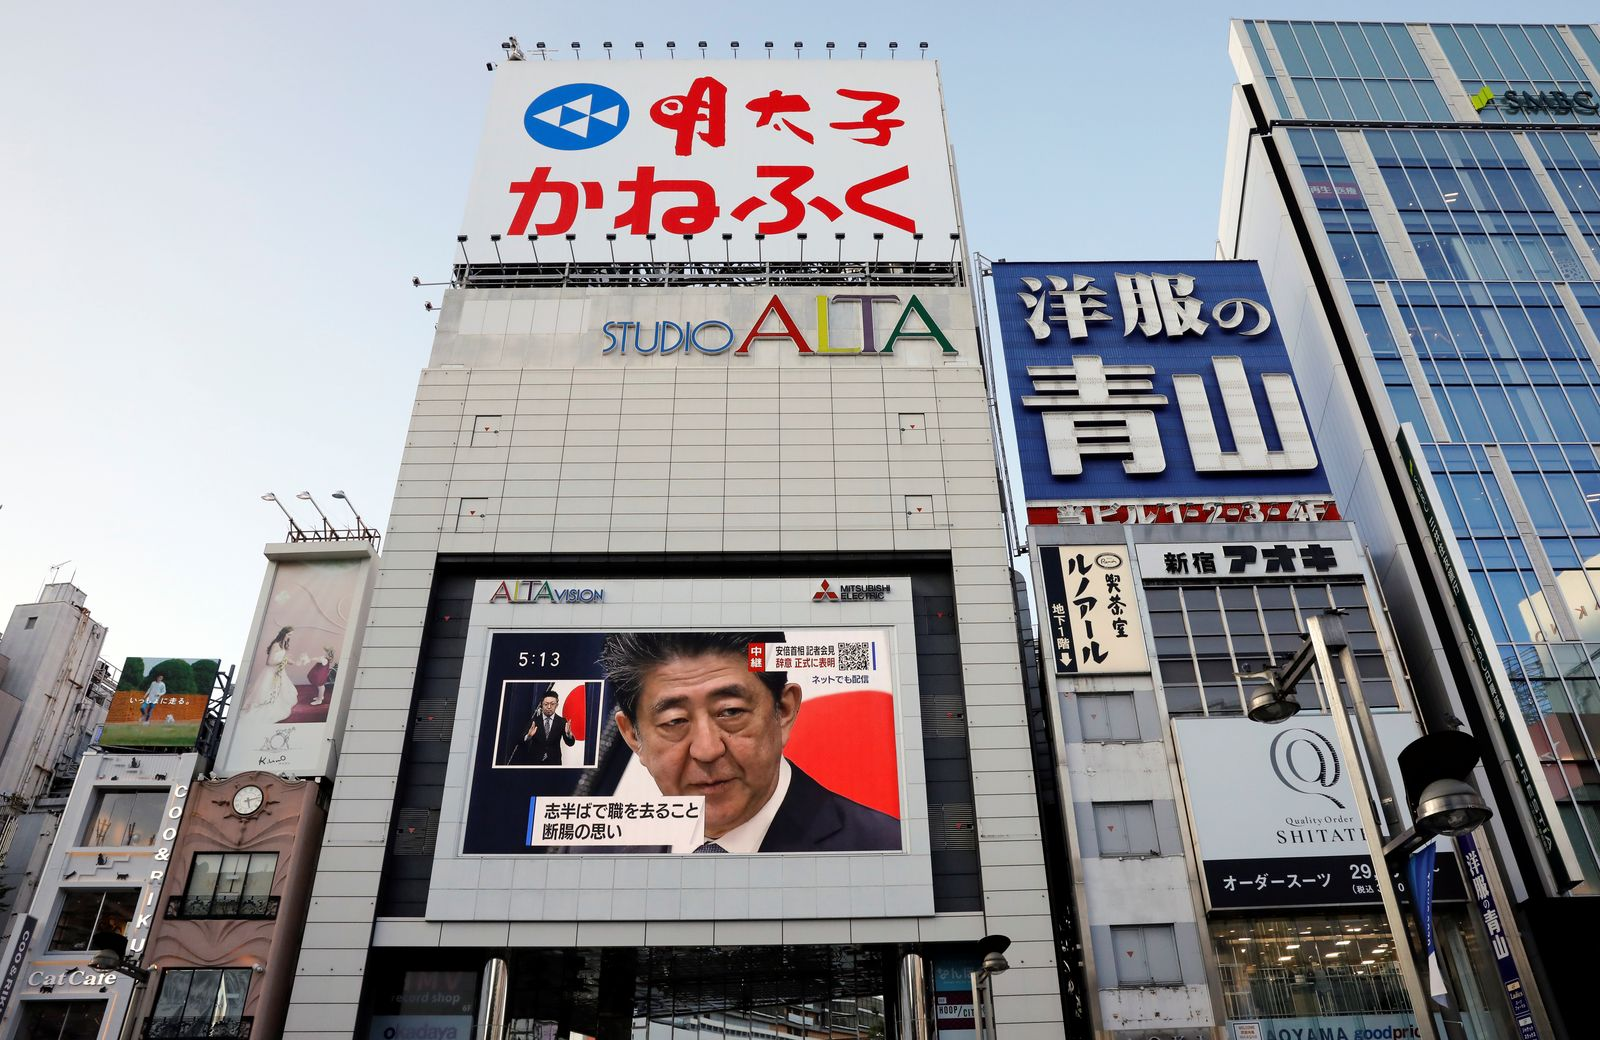 News conference of Japanese Prime Minister Shinzo Abe is broadcasted in Tokyo